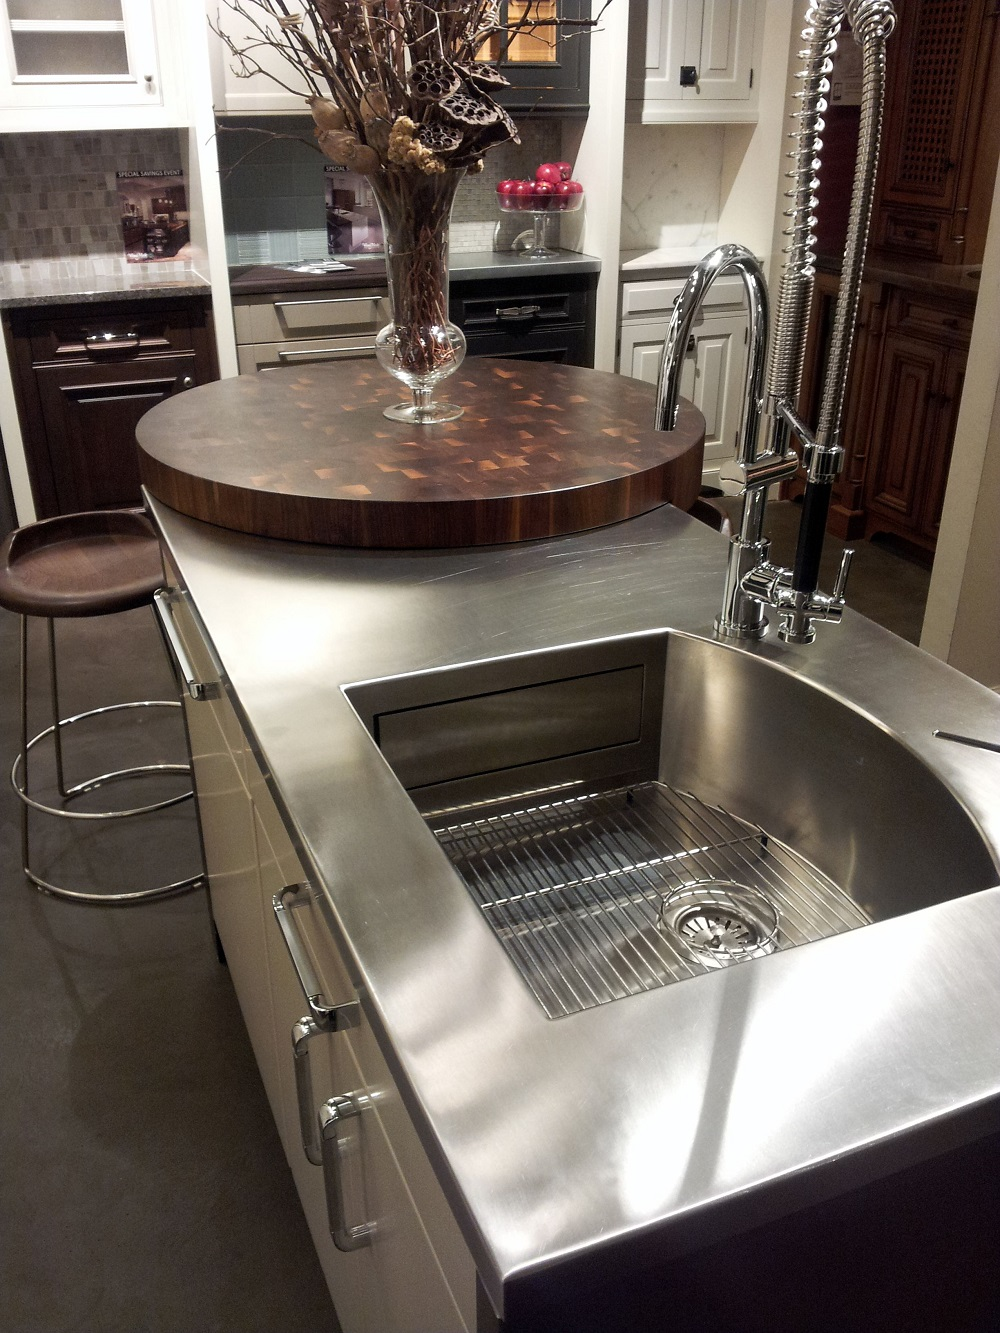 c6-1 Cool countertop ideas for you to create that standout kitchen